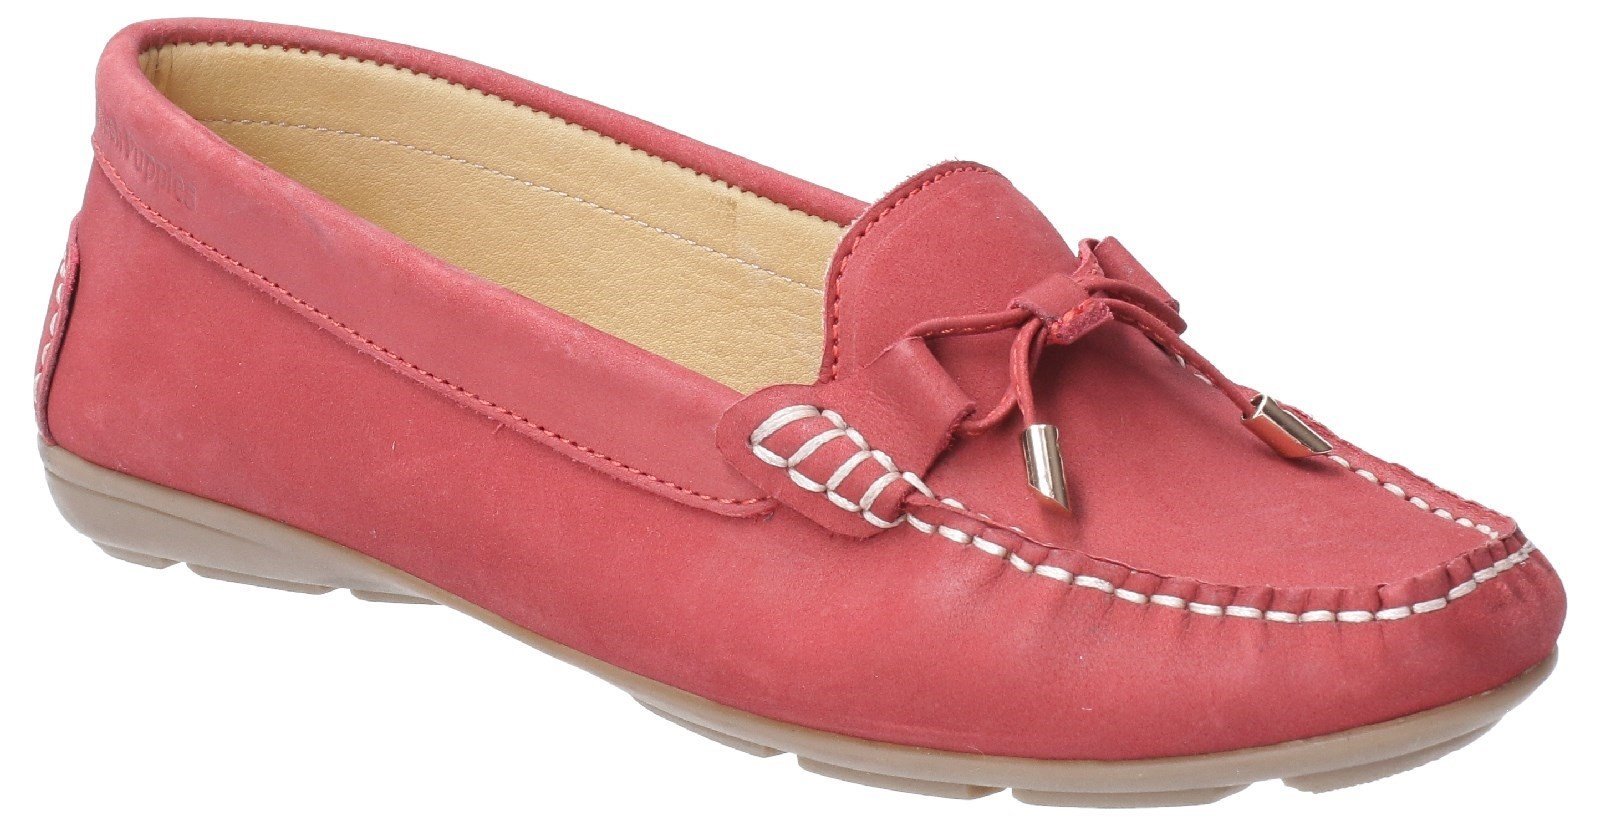 Hush Puppies Women's Maggie Slip On Loafer Shoe Various Colours 28405 - Red 3